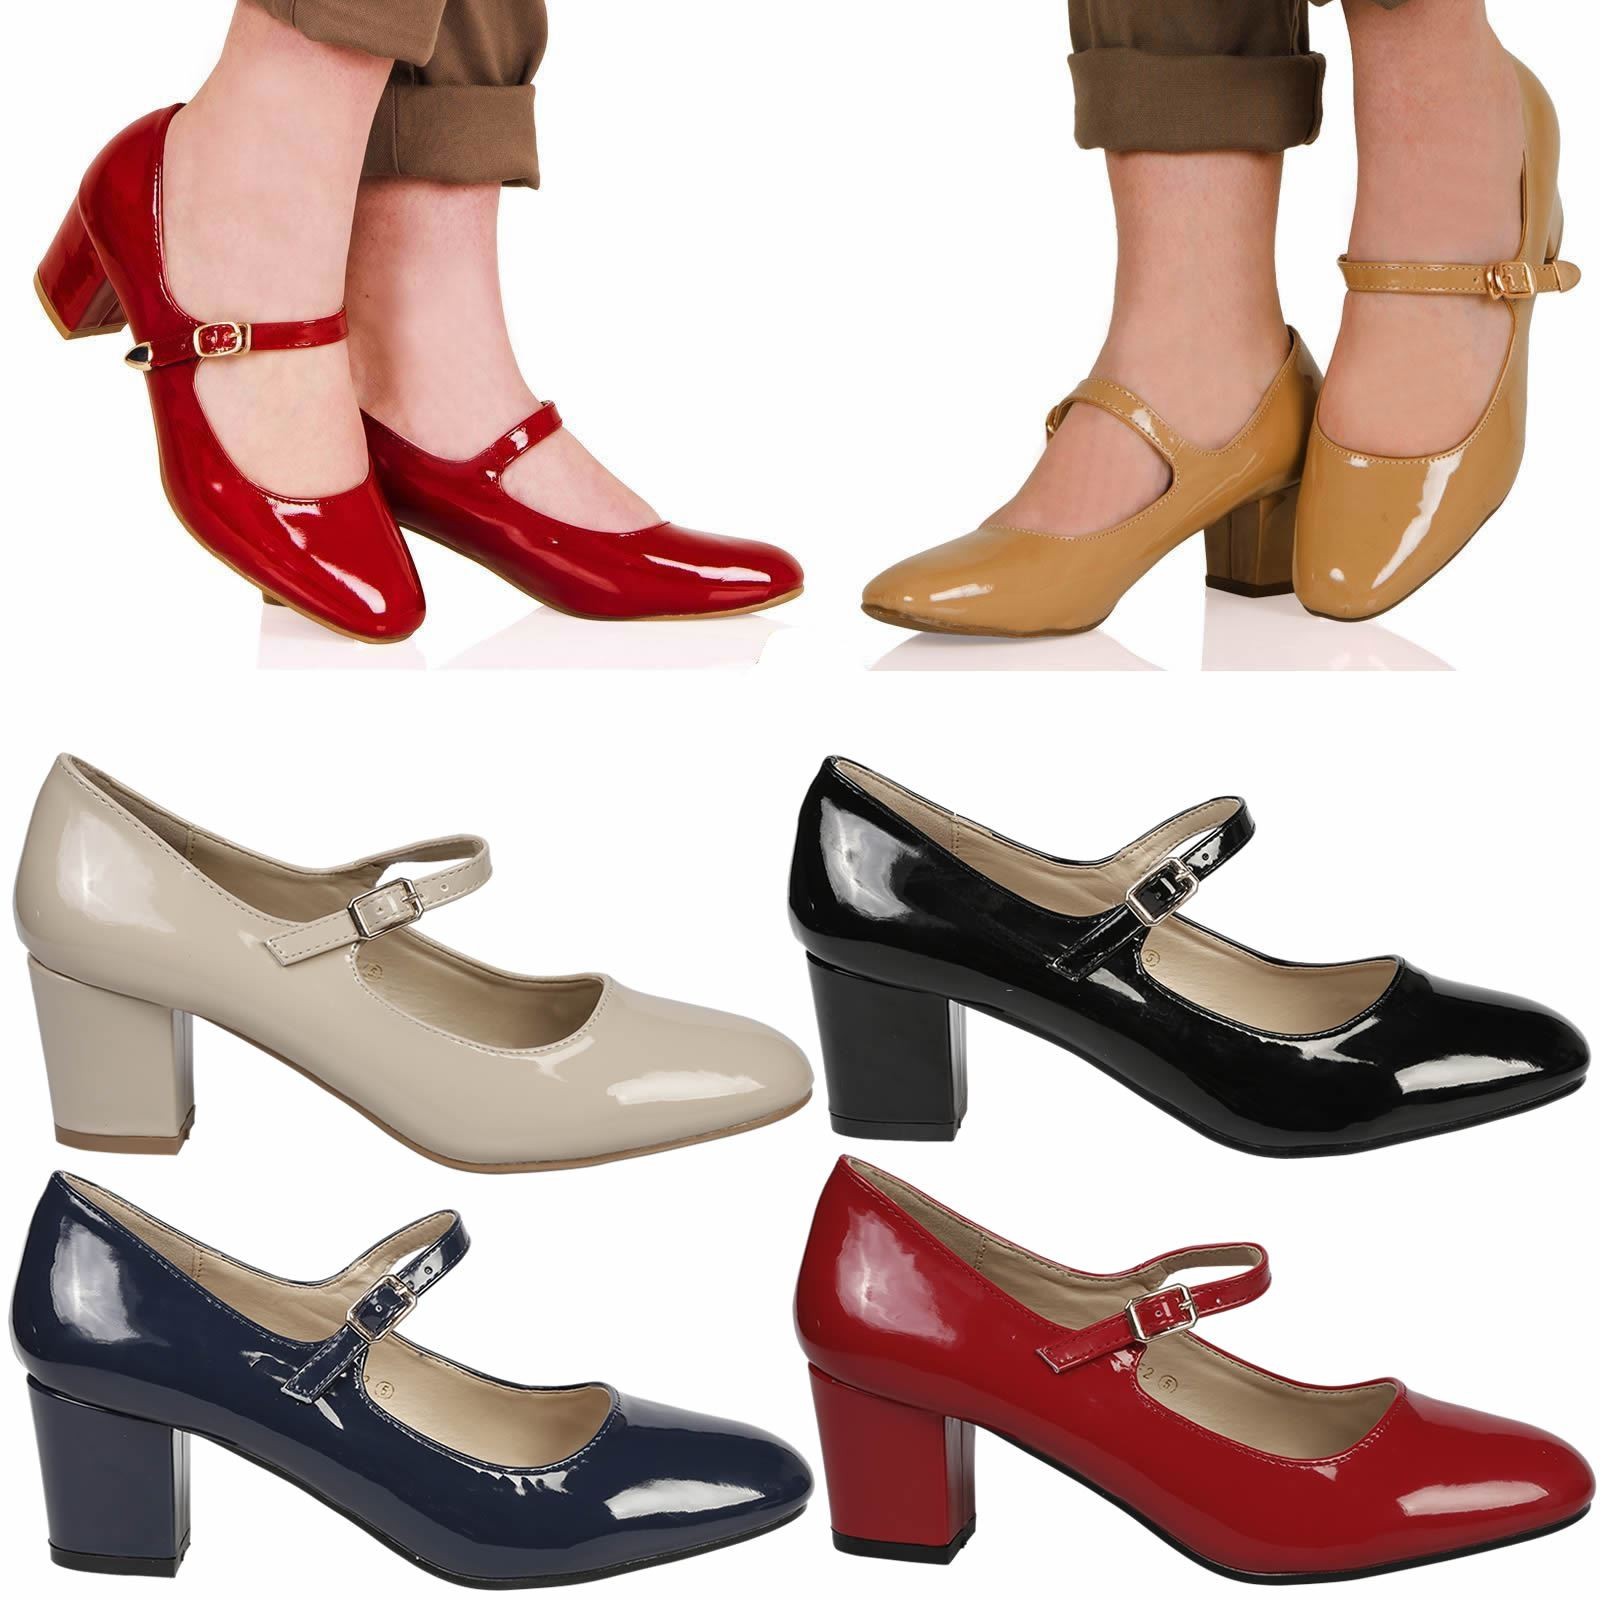 d8c9ca6adae9 Details about Xanthe Womens Low Mid Block Heels Mary Janes Smart Ladies  Court Shoes Pumps Size